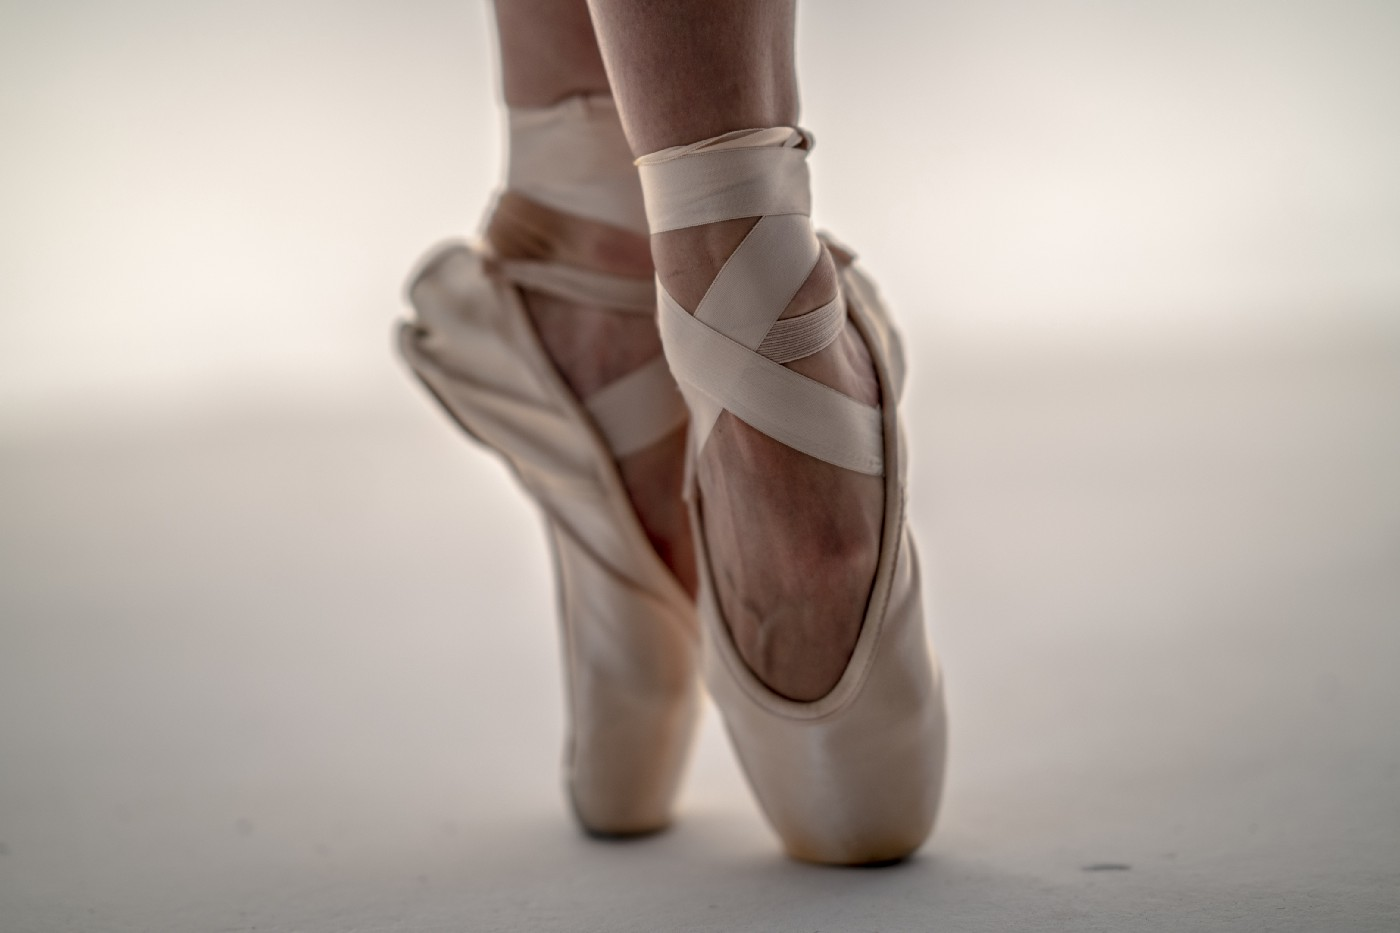 A pair of pointe shoes